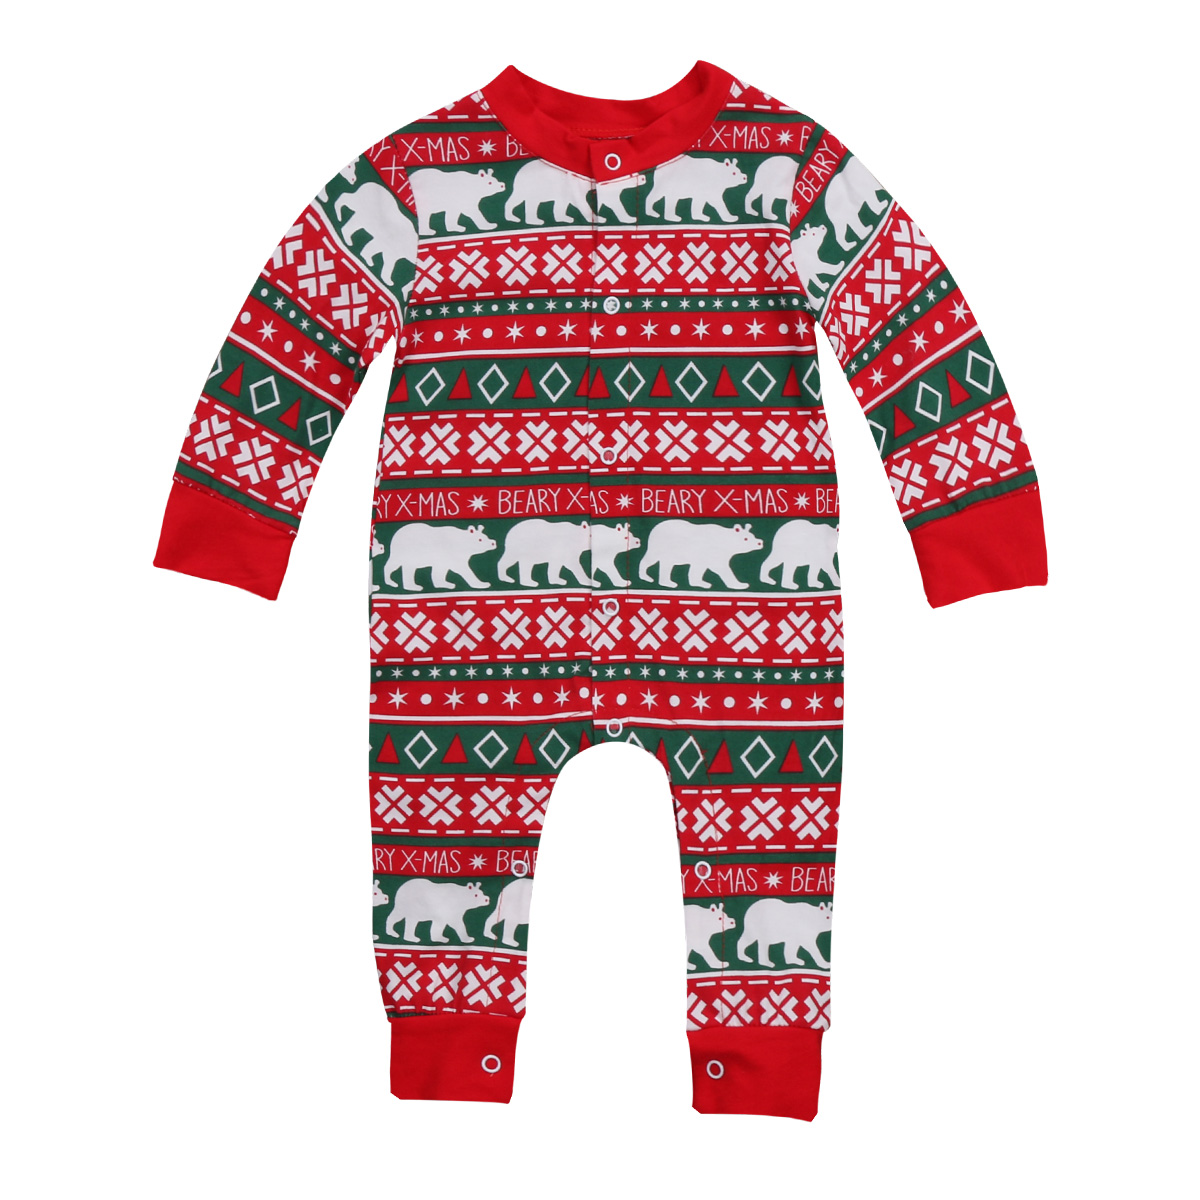 Newborn Baby Boy Girl Clothing Xmas Romper Jumpsuit Long Sleeve Cotton Cute Infant Winter Clothes Baby Girls Outfit newborn infant baby romper cute rabbit new born jumpsuit clothing girl boy baby bear clothes toddler romper costumes